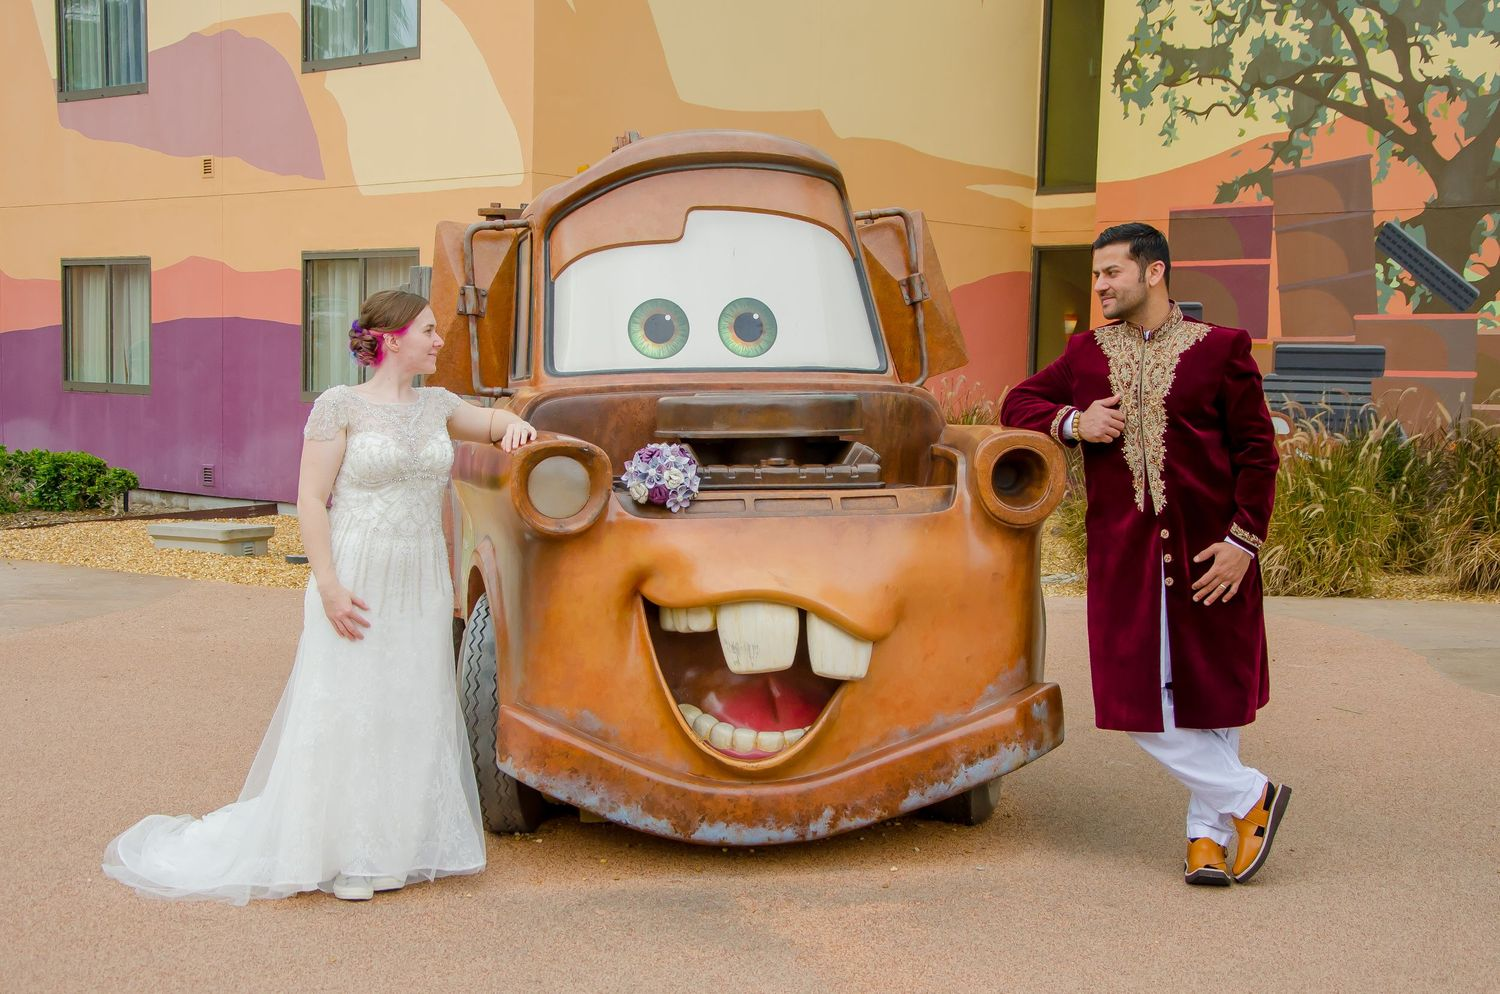 Bride and Groom with Tow Mater at their Walt Disney World Art of Animation Resort wedding